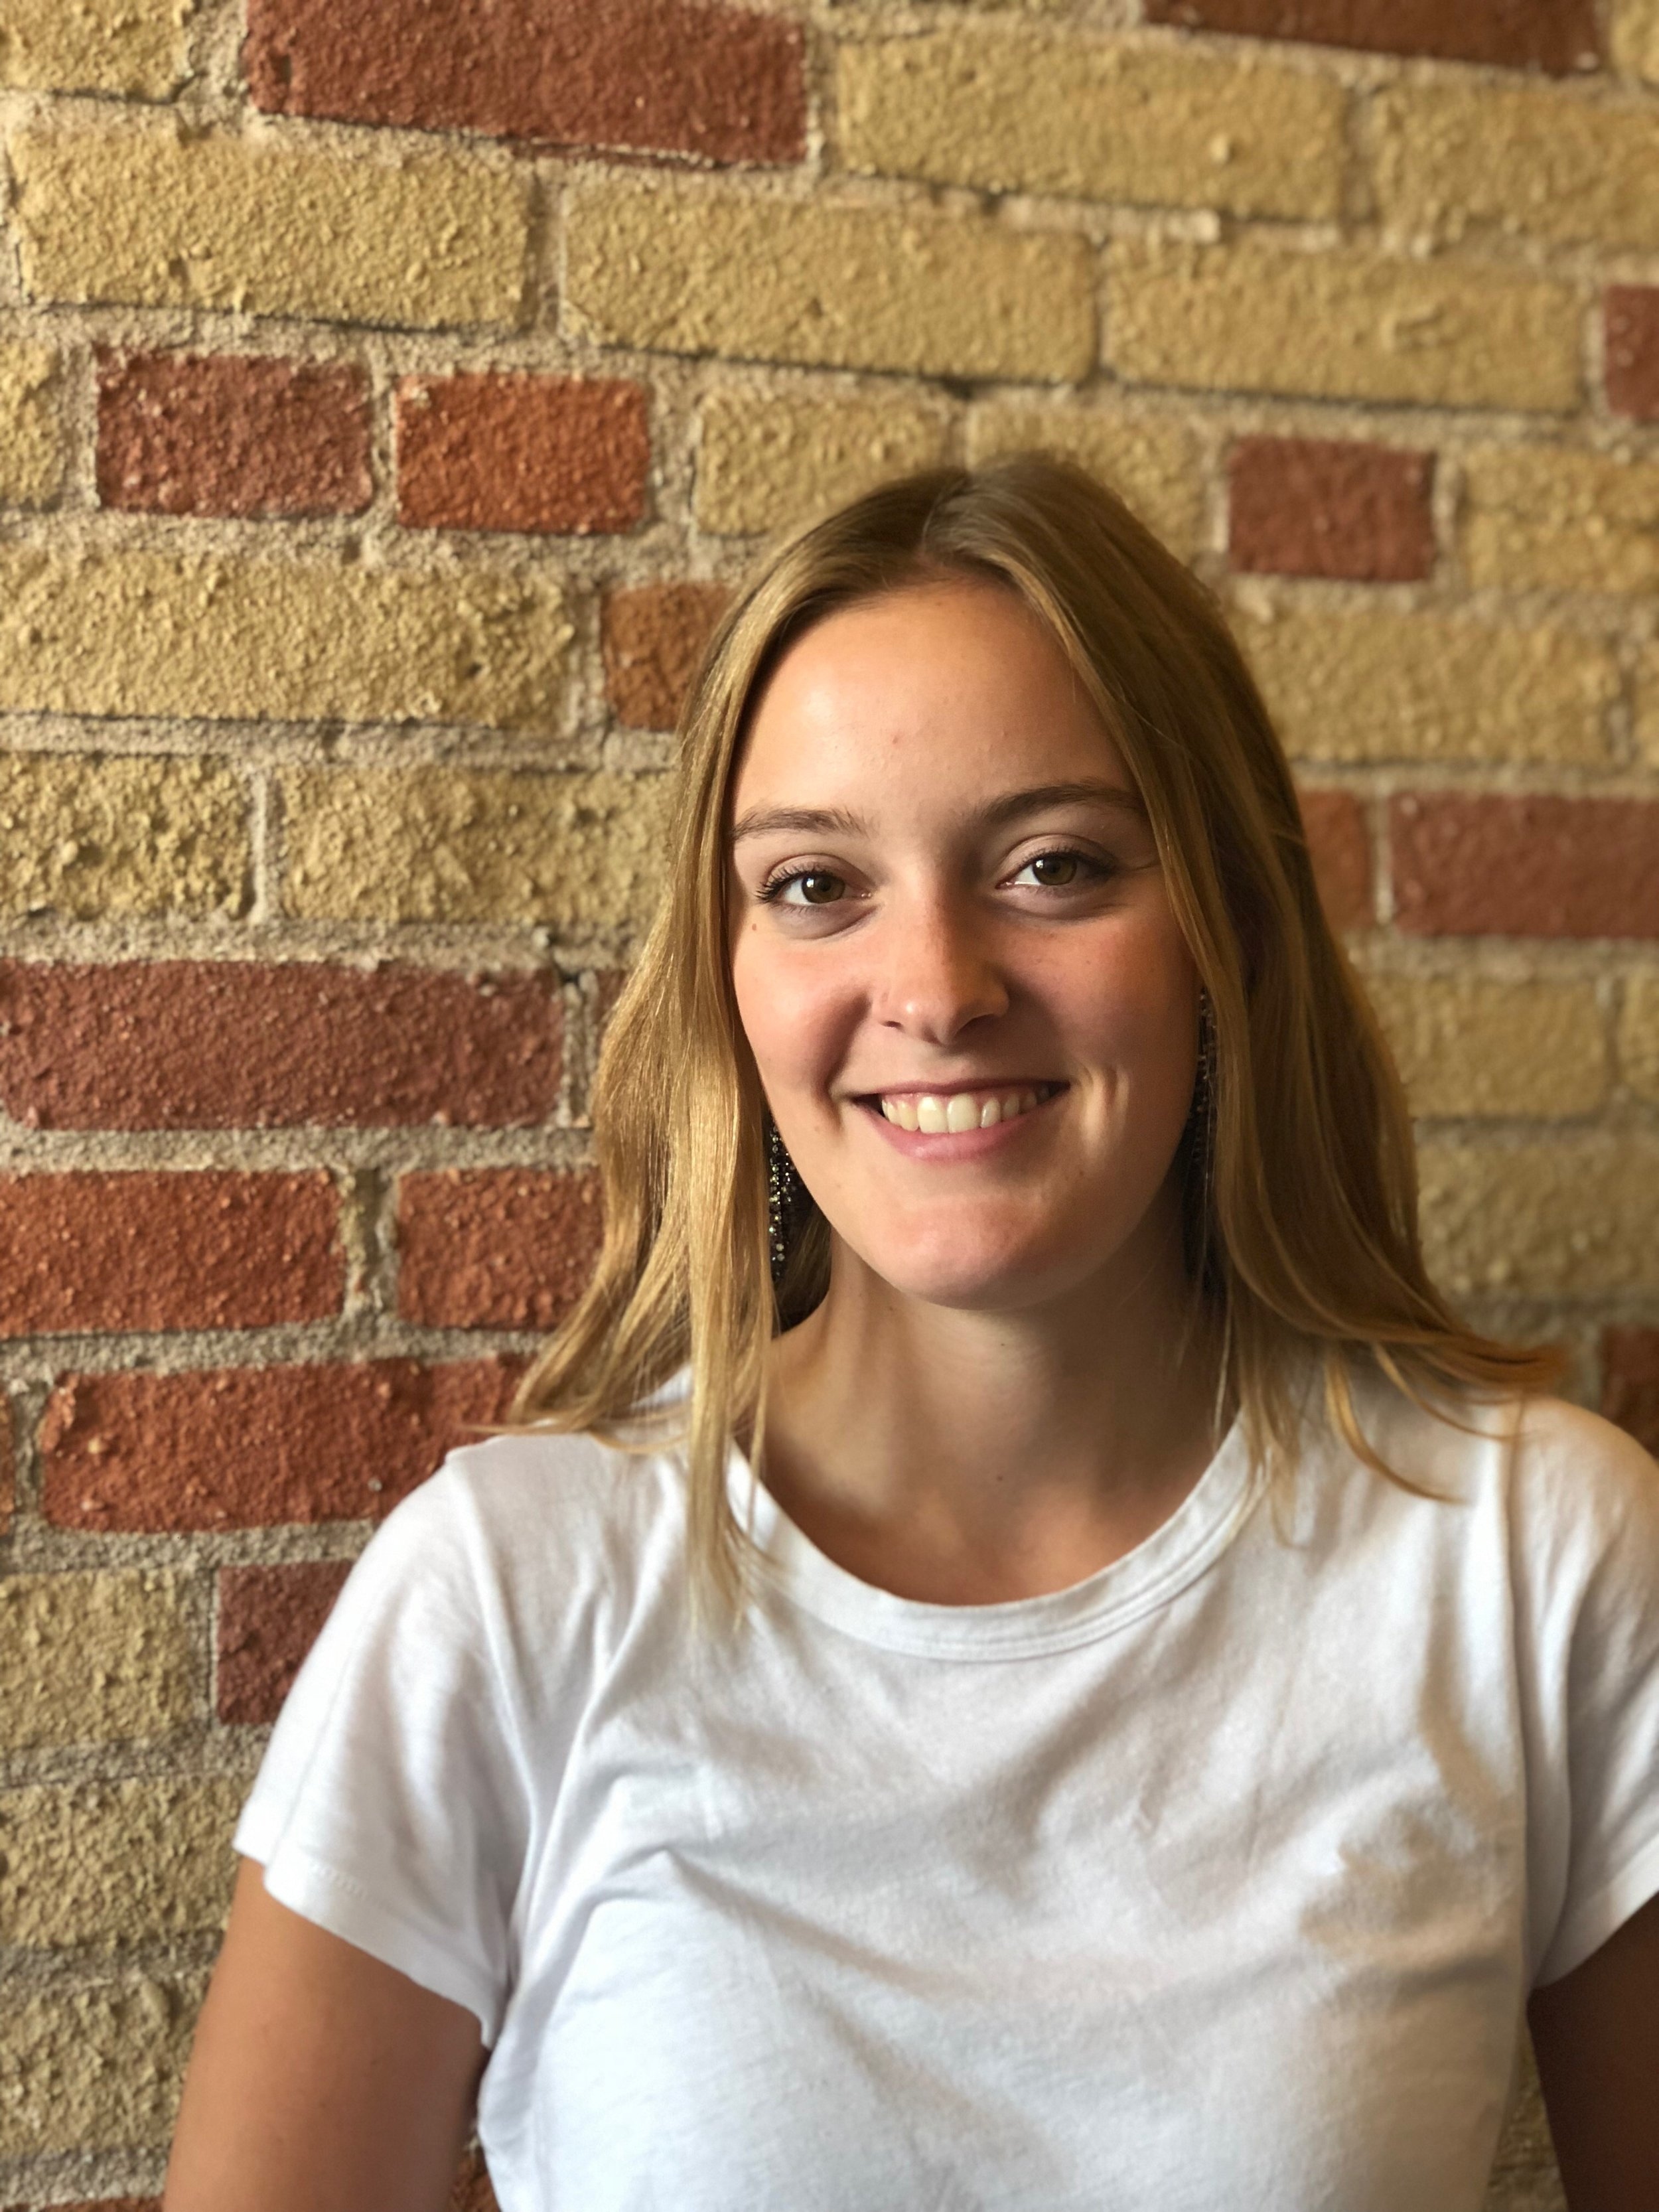 Anna is a founding member of Kite Vancouver, a member of Kite International, and a graduate from the University of British Columbia where she studied the role of institutions in economic development. She believes in Kite as an opportunity to reinforce interdisciplinary collaboration and community engagement for students in an often siloed academic environment. She is interested in the role of emerging technologies such as blockchain in international development, and is currently working as a project manager in this sector in Toronto.